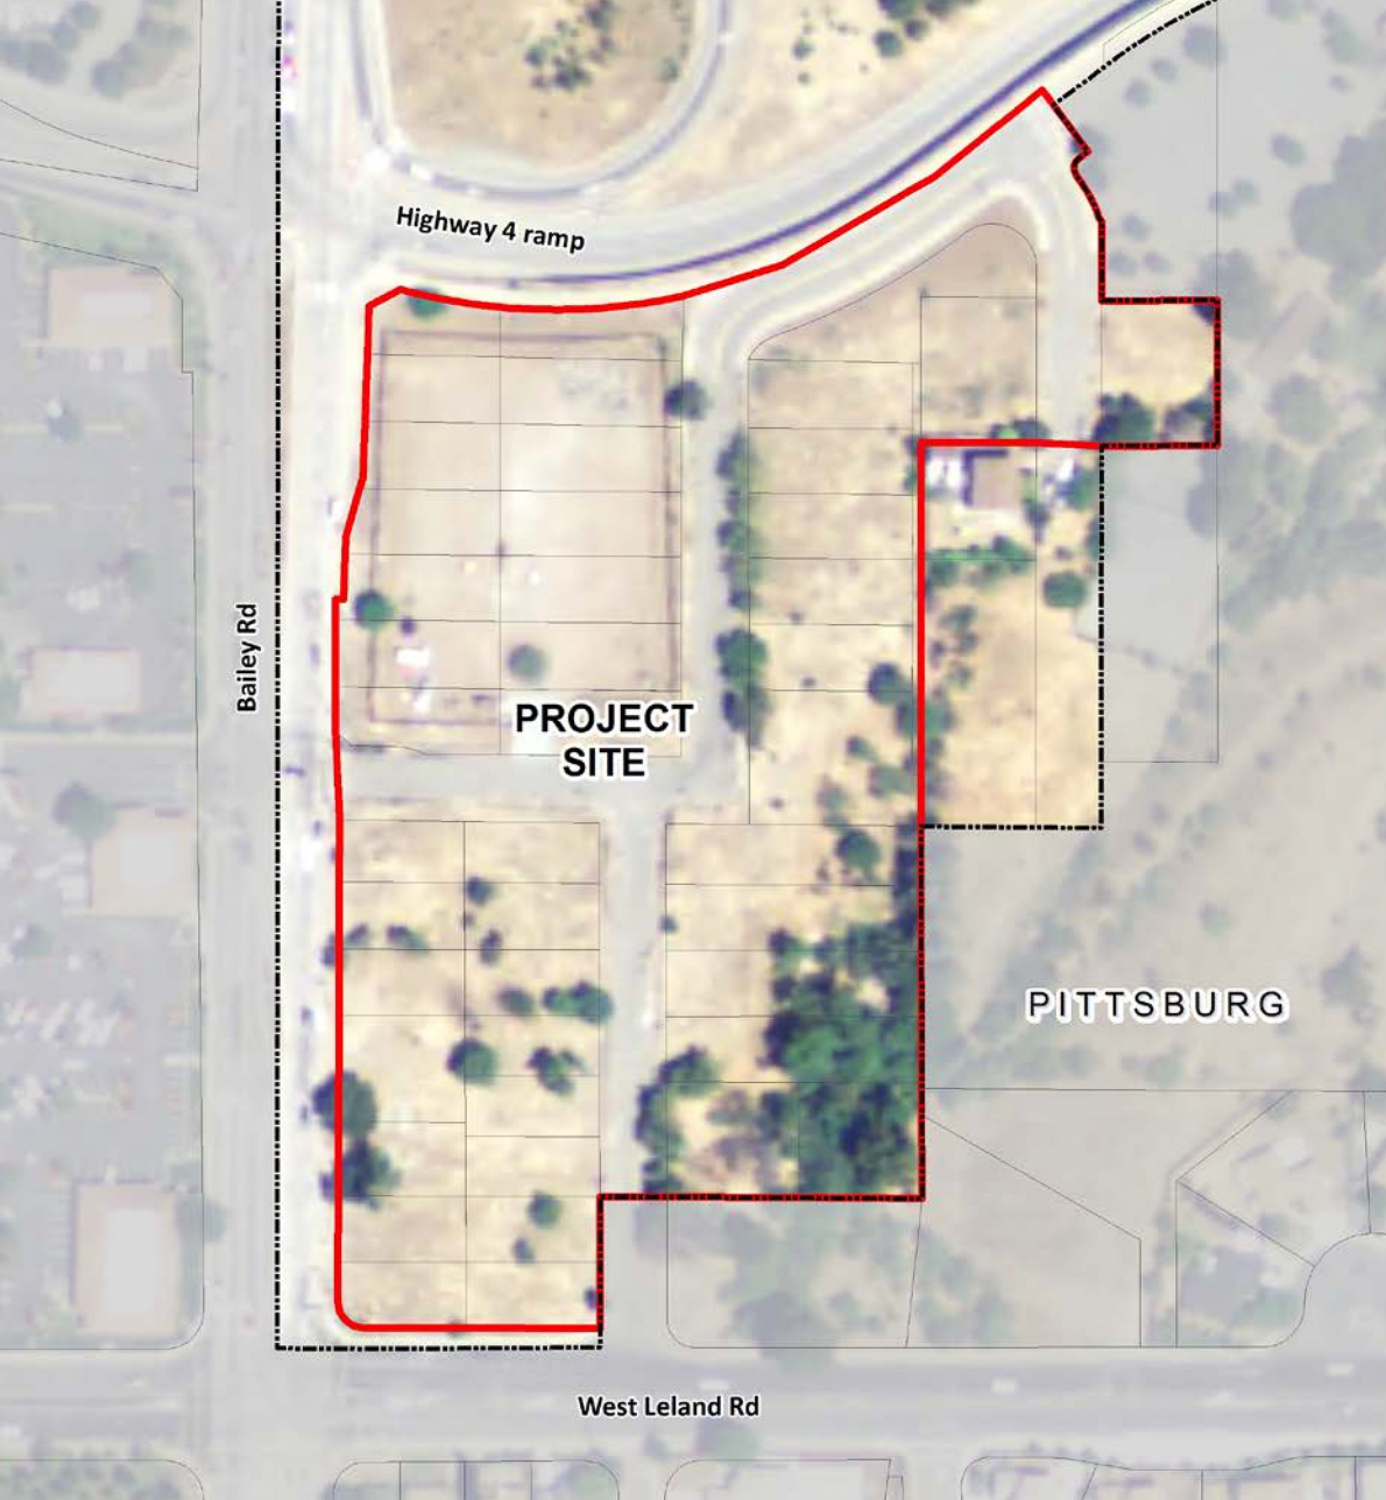 Orbisonia Heights project site map, image via Conta Costa County